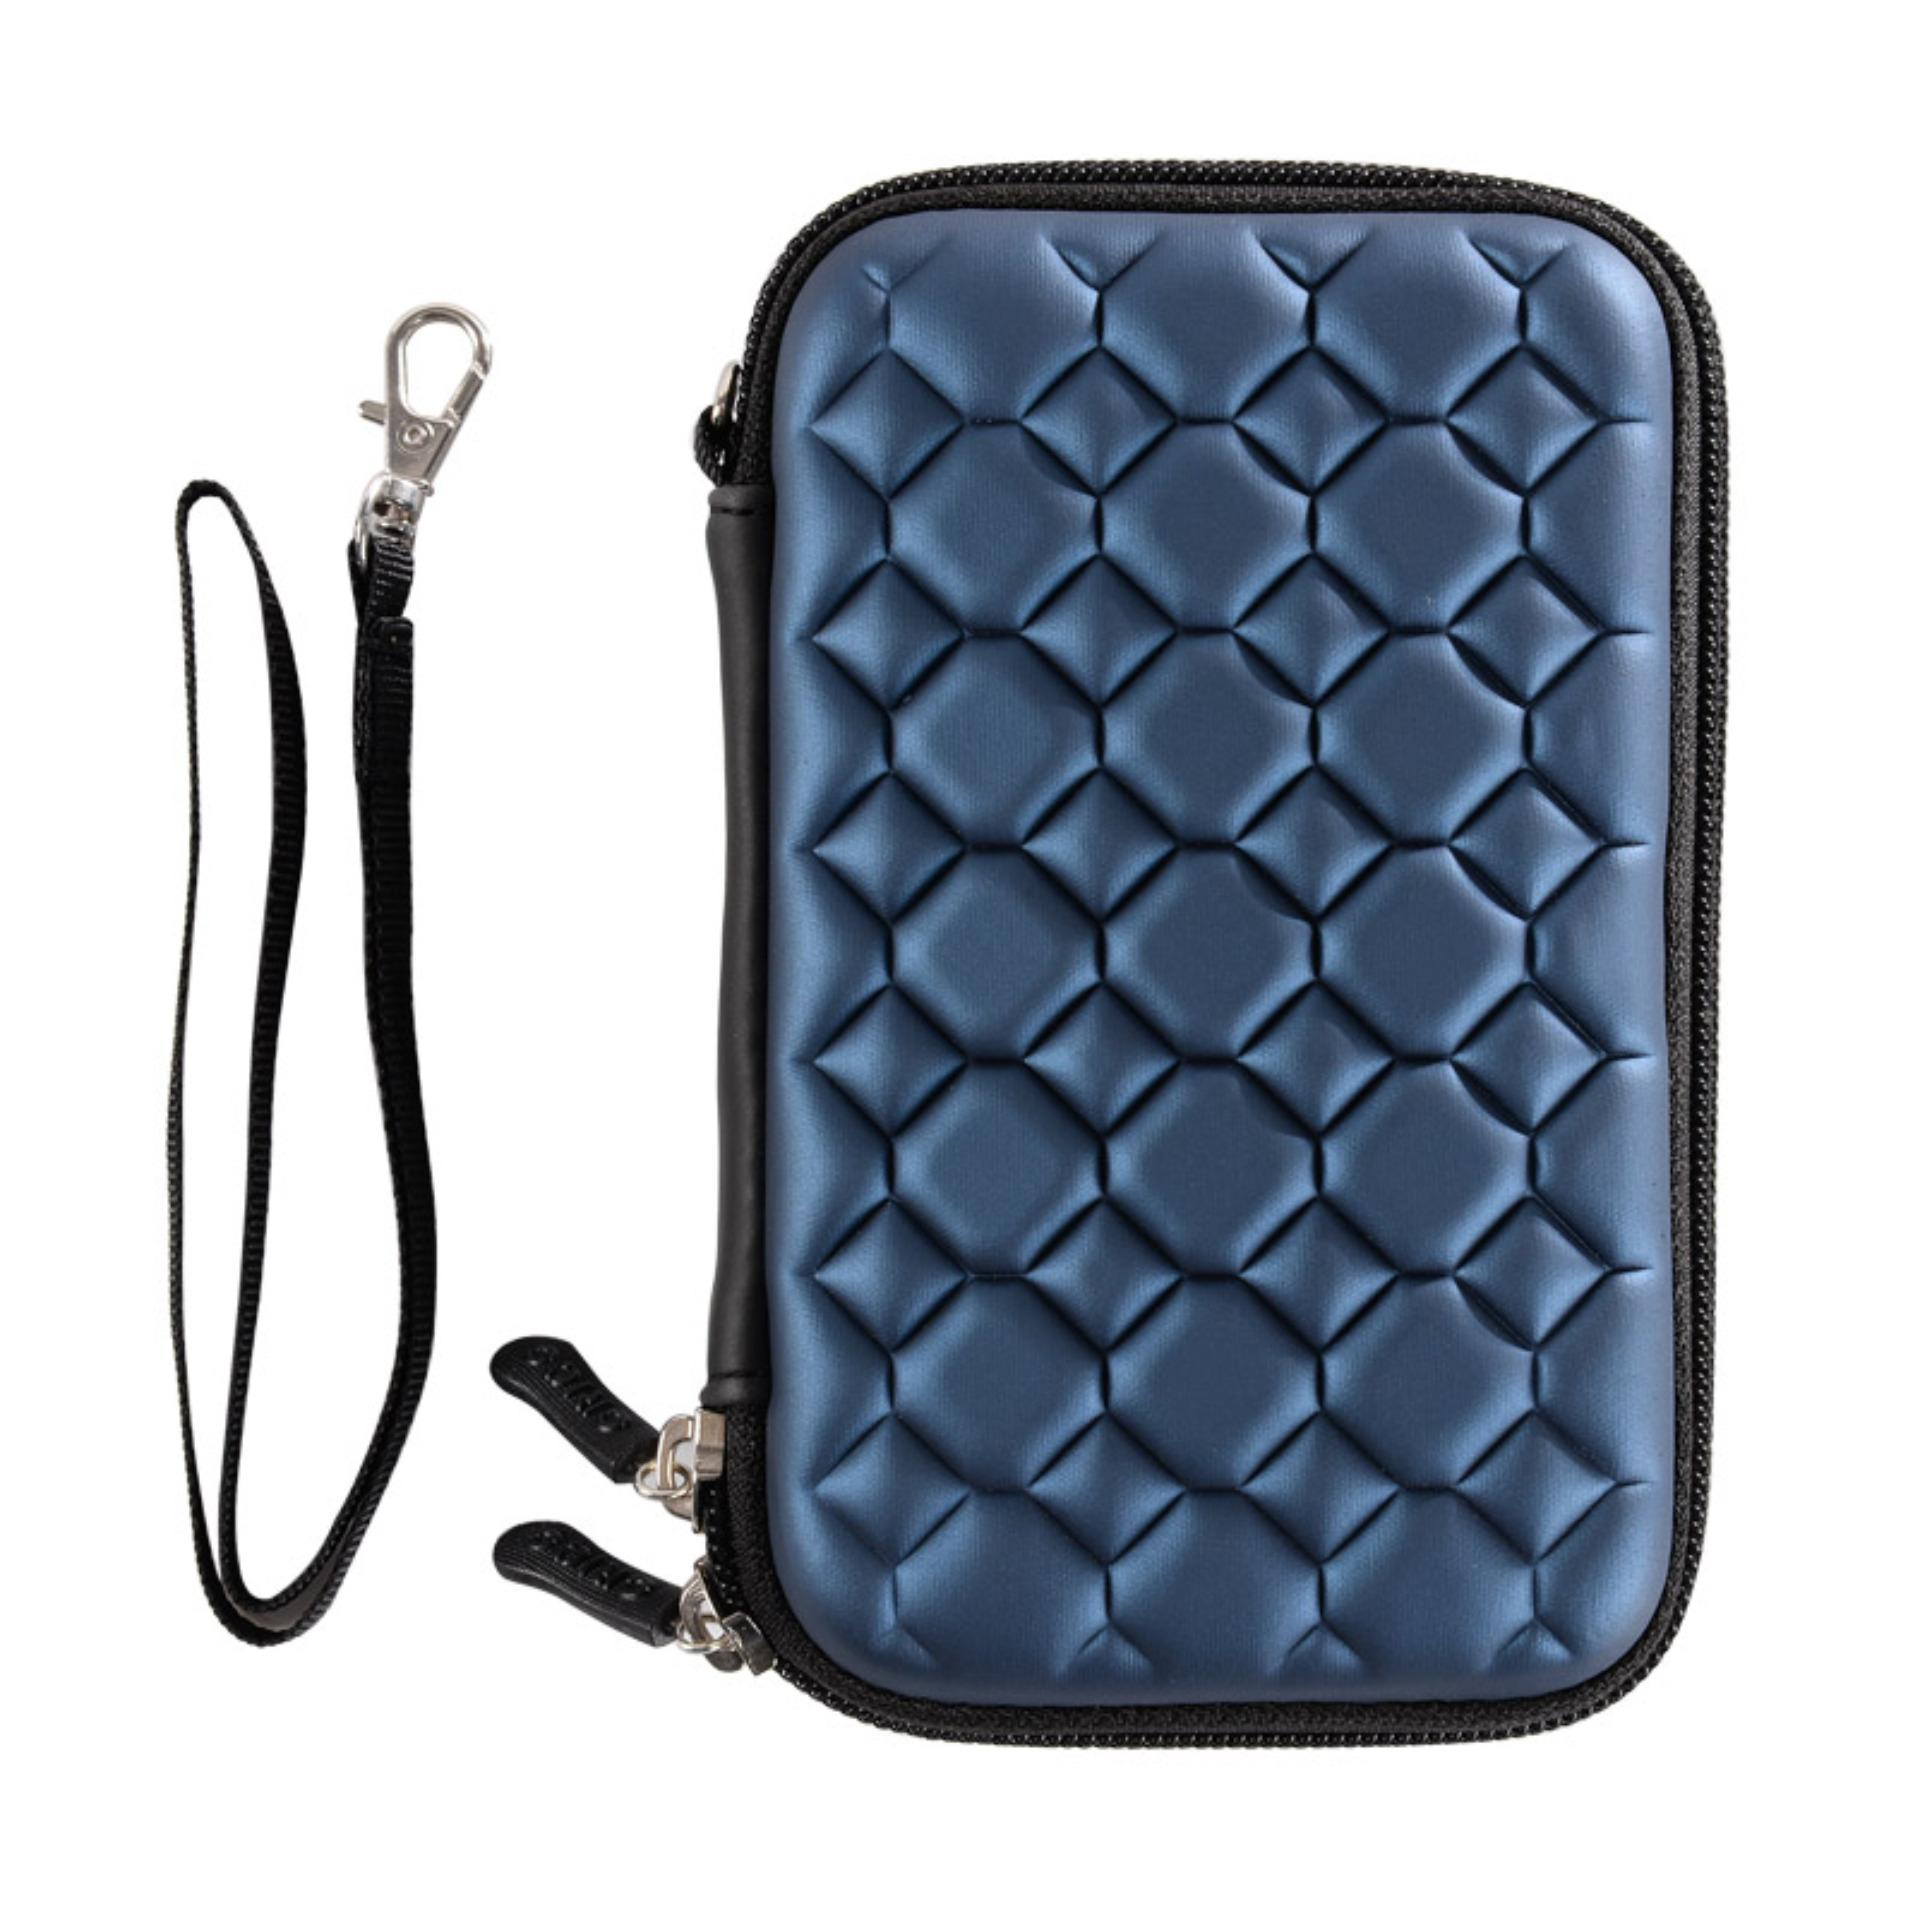 Orico Phd 25 Inch Hdd Protector Biru Update Harga Terkini Dan Shockproof Case For 25inch Harddisk And Gadgets Protection Bag Phc